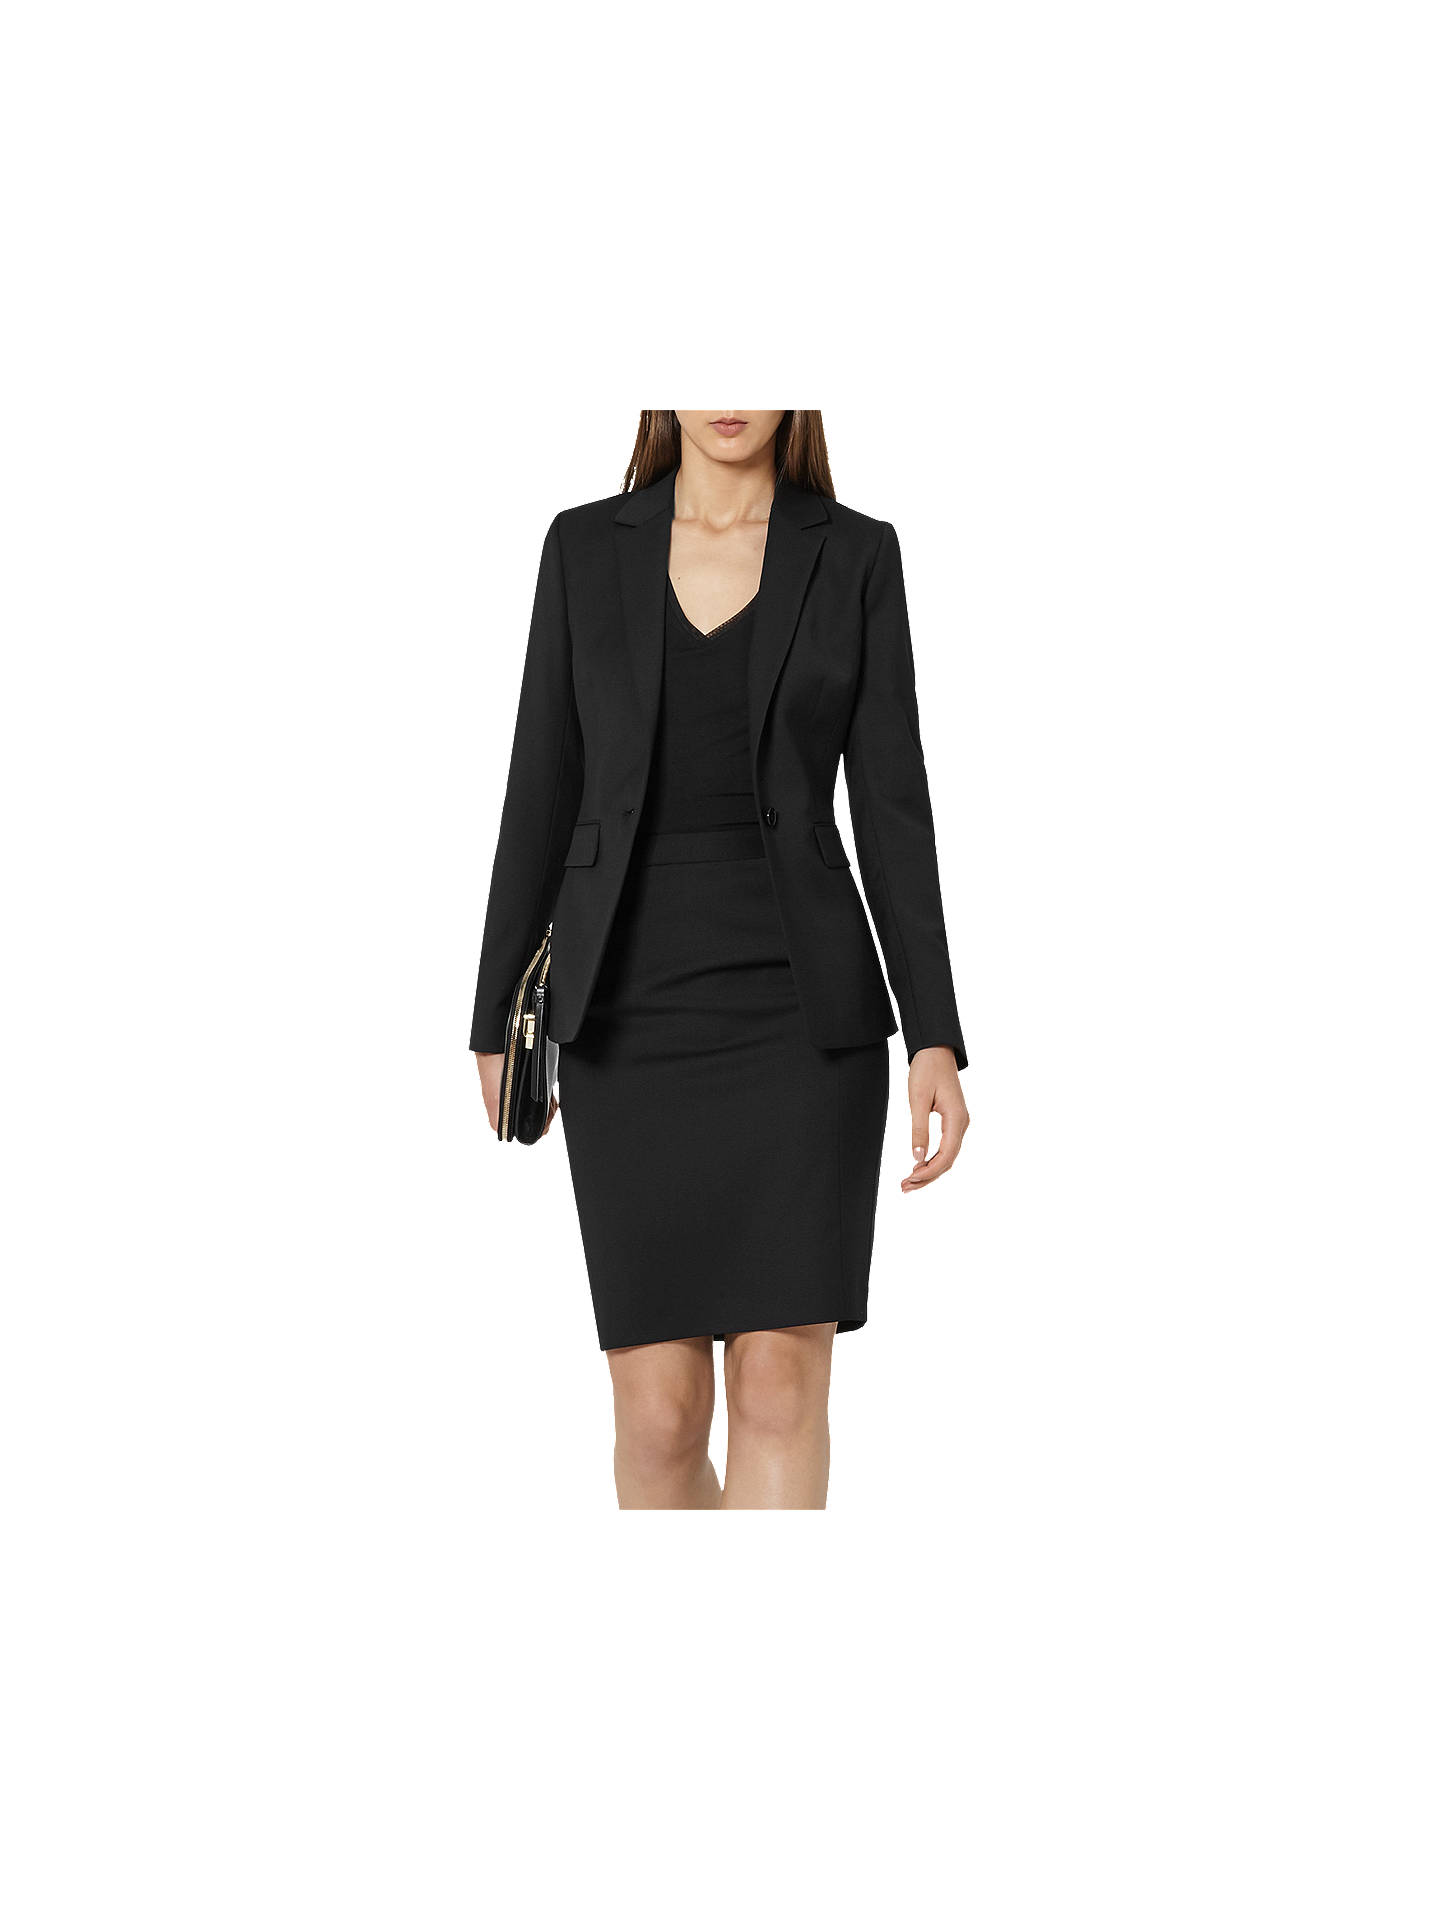 Buy Reiss Tailored Pencil Skirt, Black, 6 Online at johnlewis.com